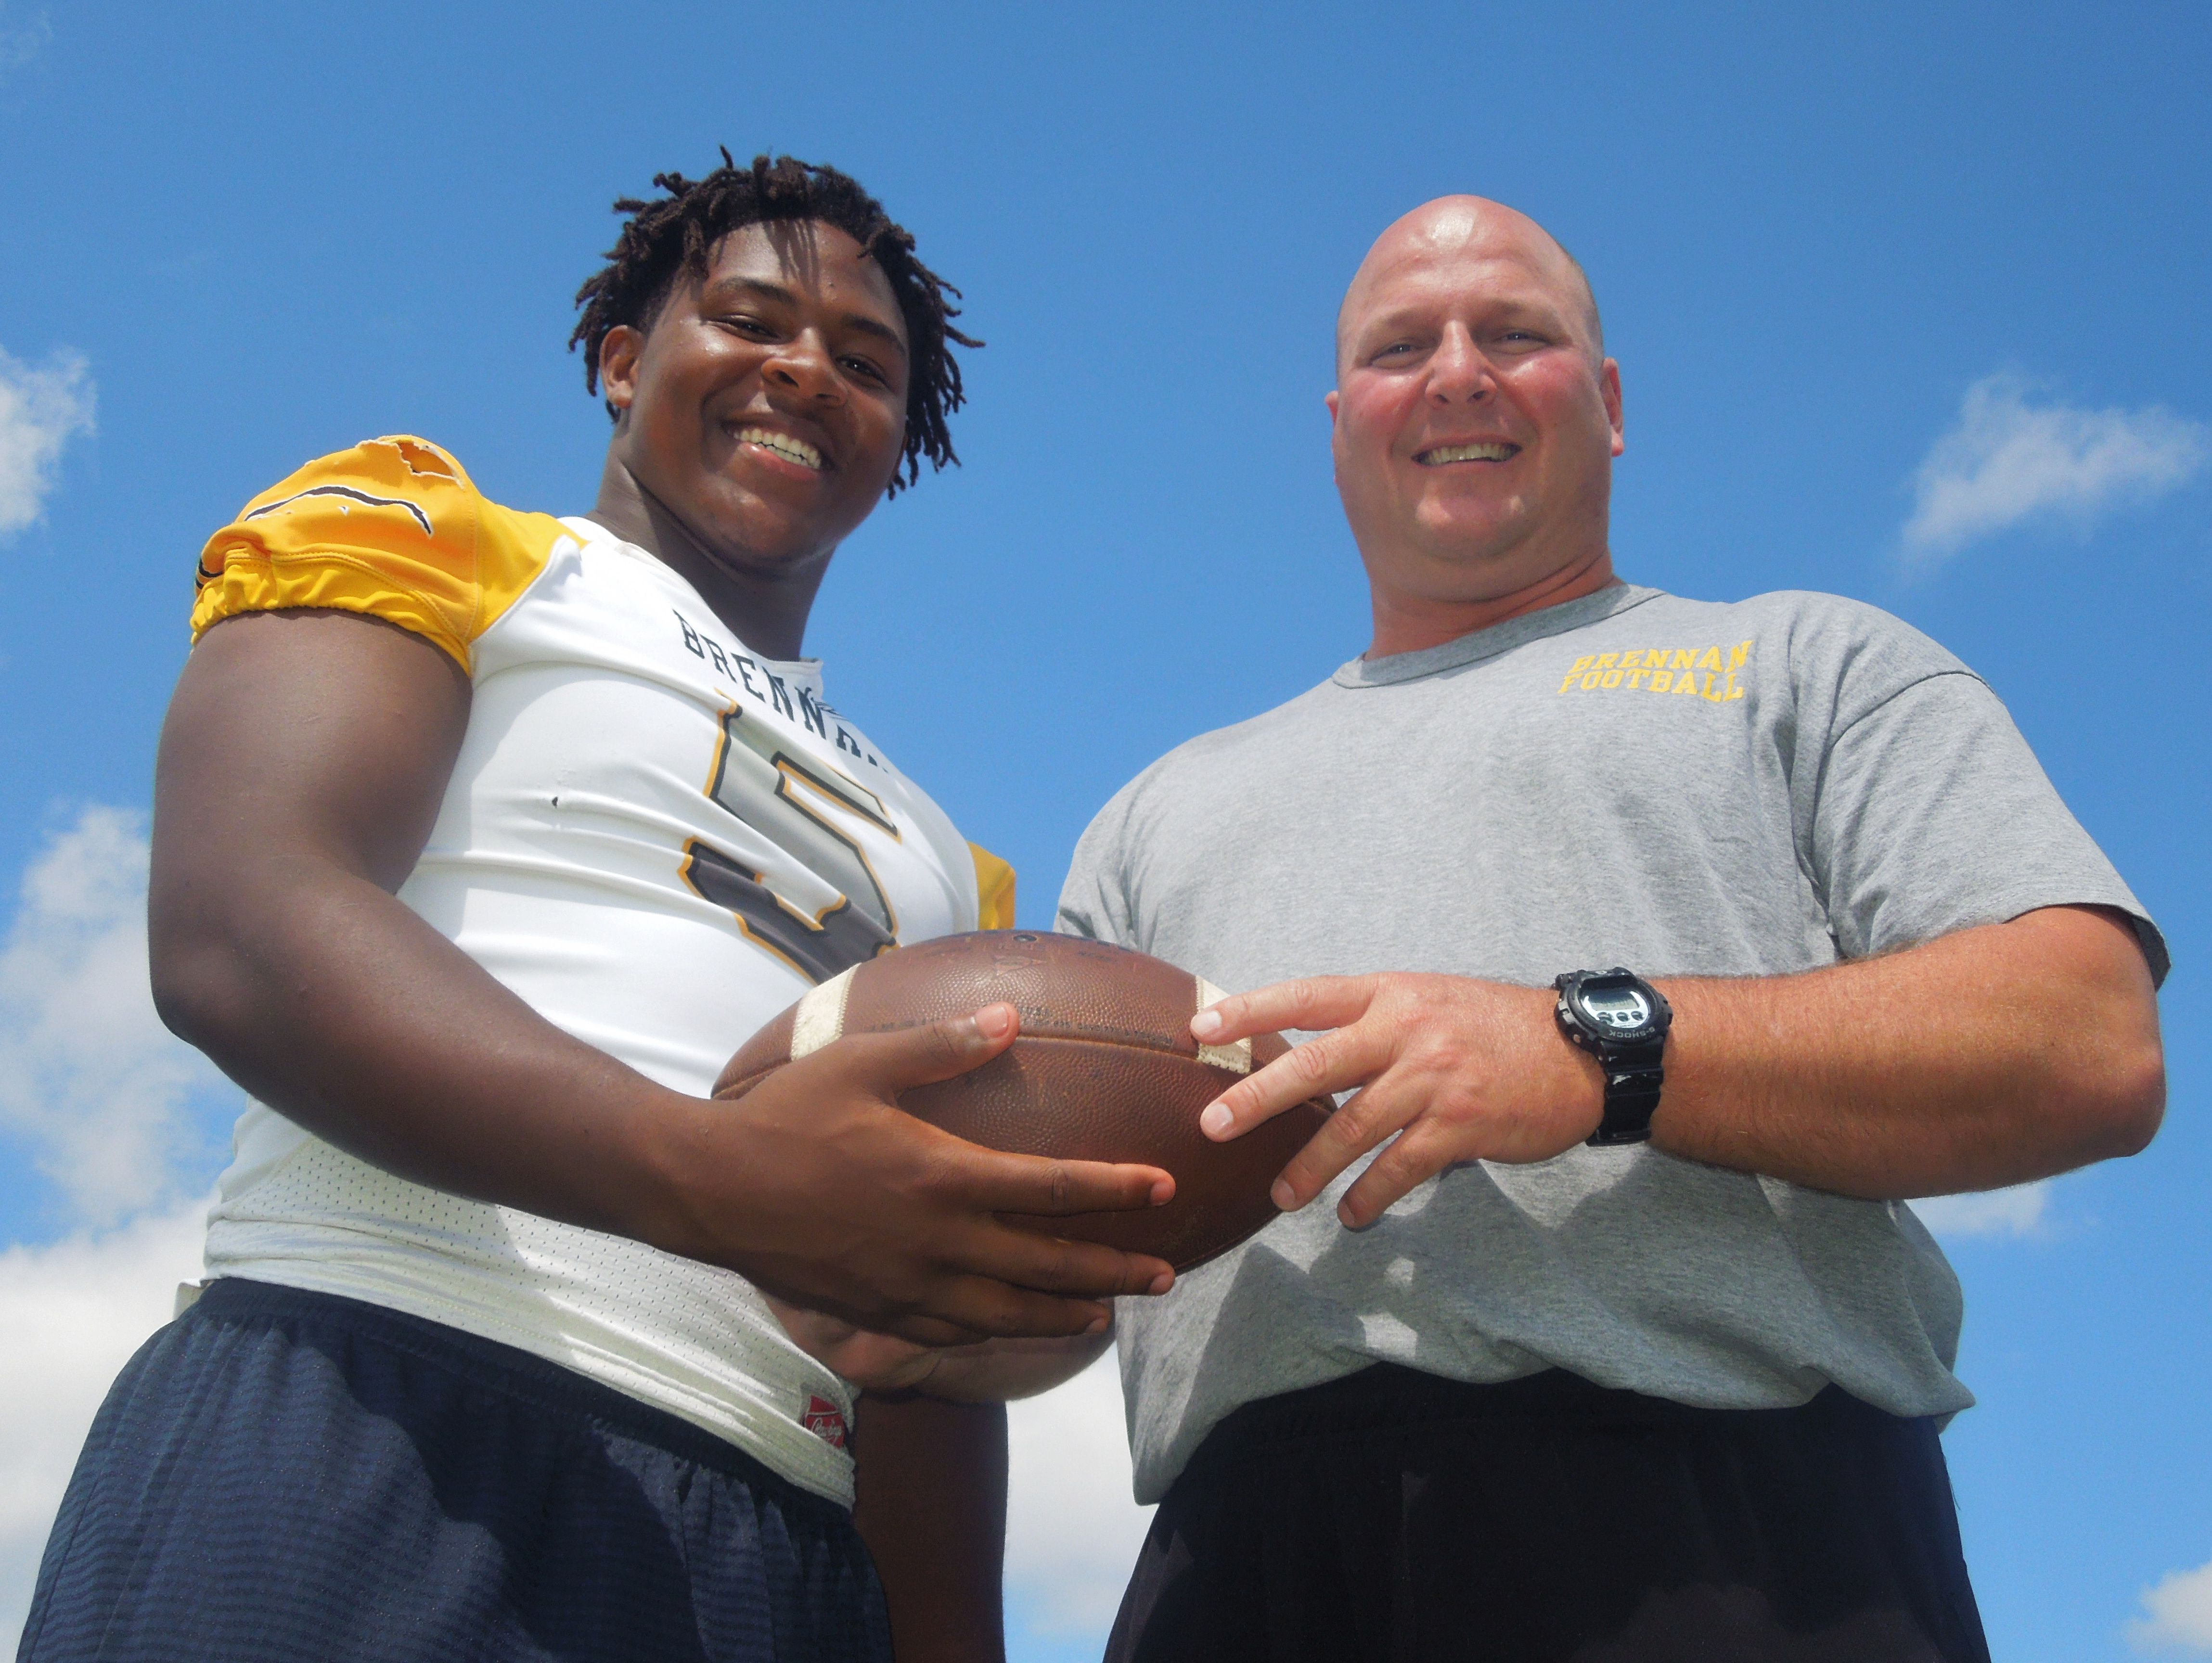 Brennan head coach Stephen Basore says that senior middle linebacker D.J. Allen has a good combination of strength, speed and quickness.